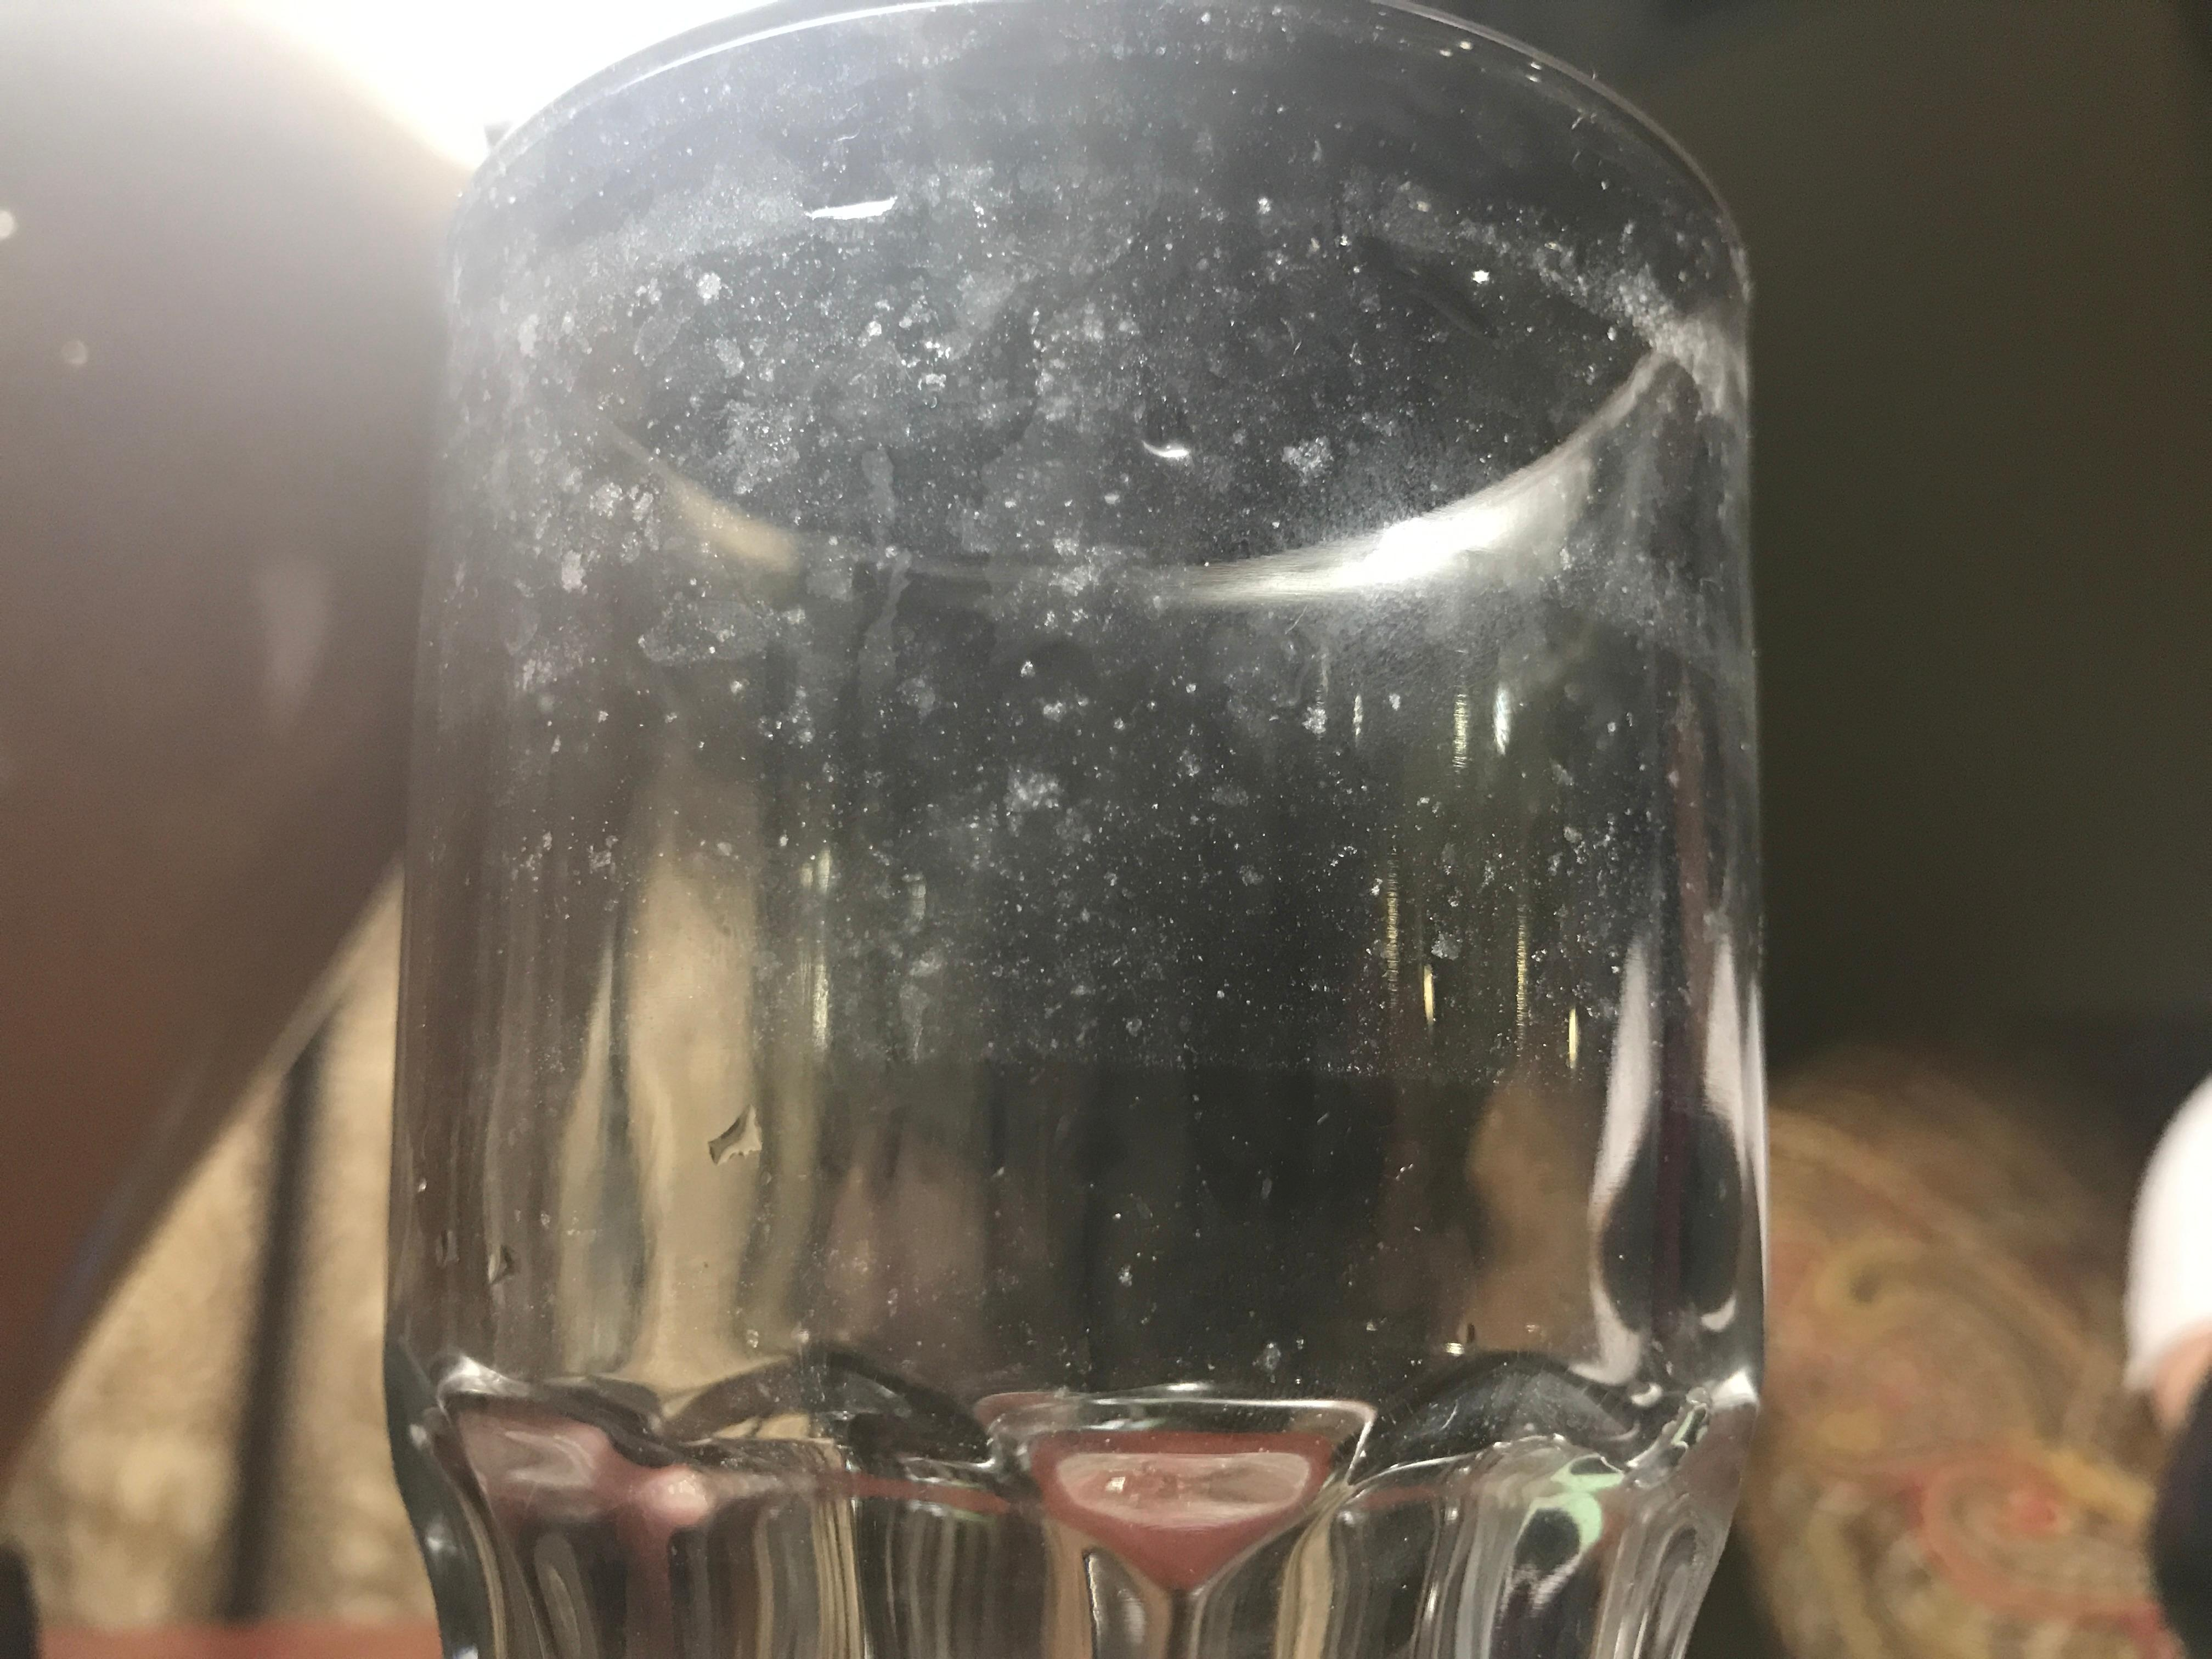 Filthy glass